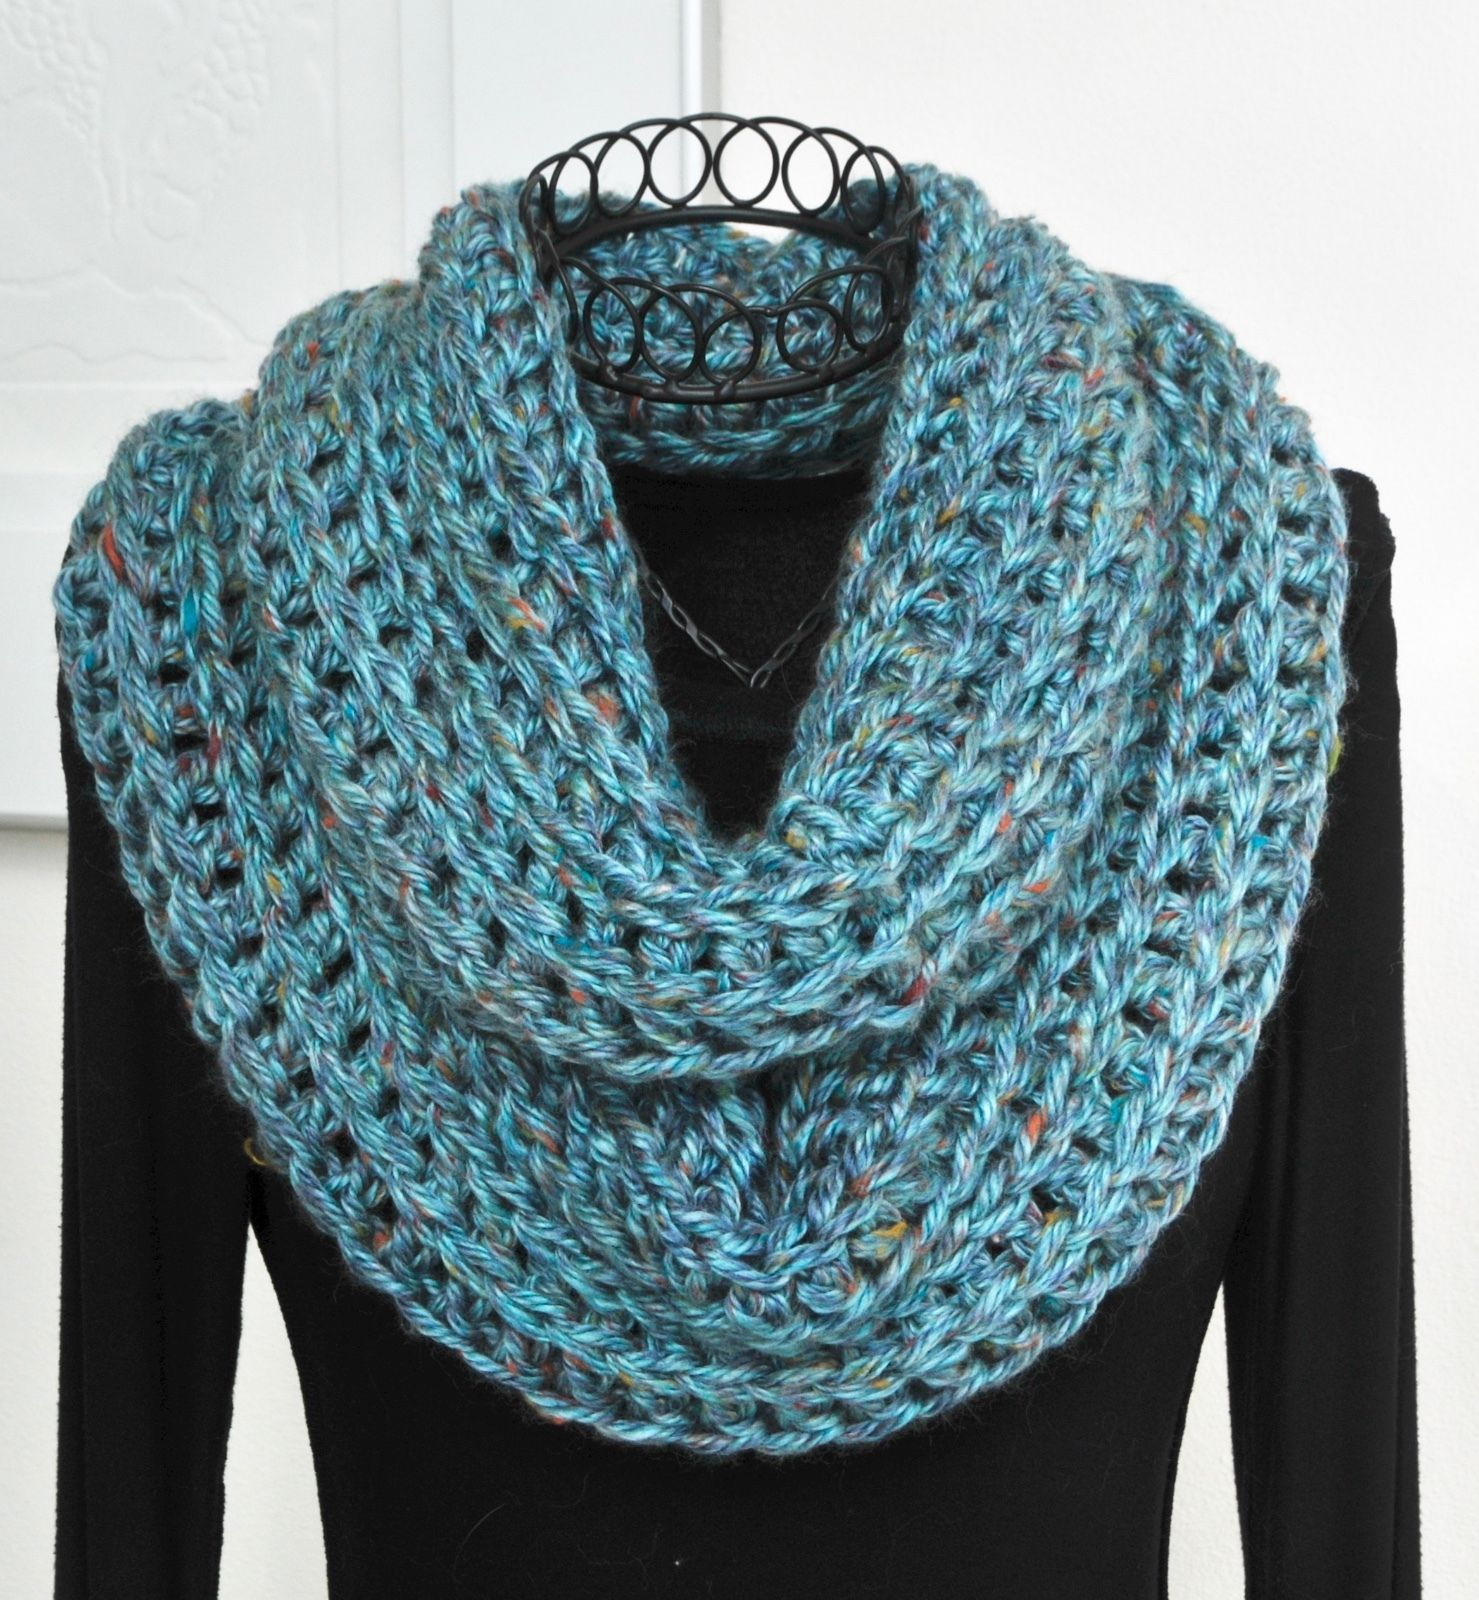 Primary image for ArtyGirlz HAND CROCHETED Infinity Cowl Scarf GORGEOUS Key Largo Blue NEW